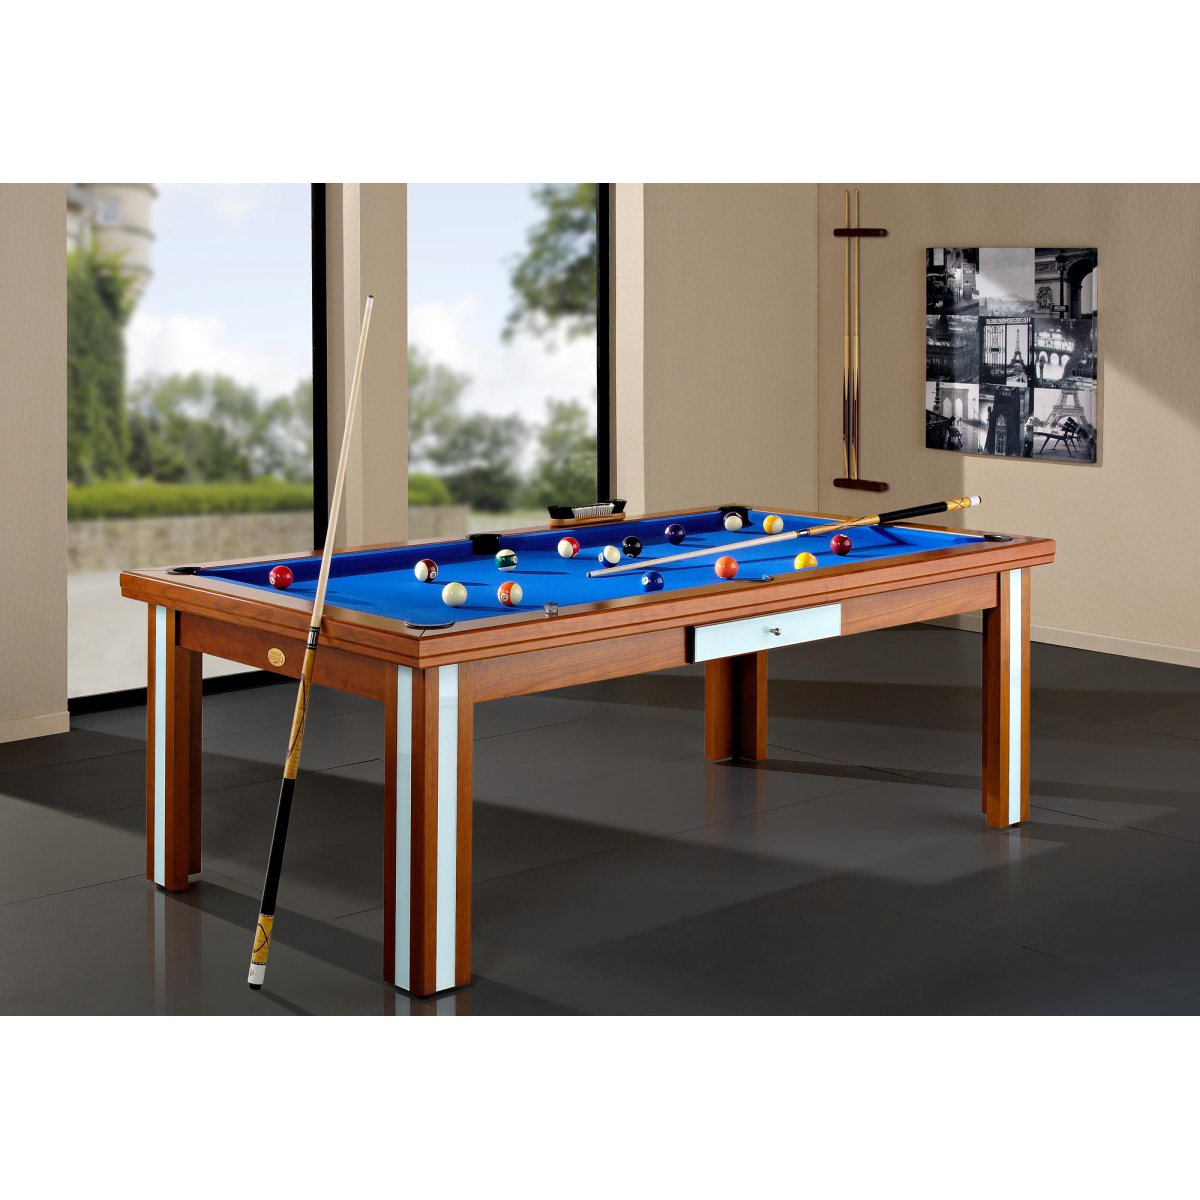 Table billard transformable paris - Table de billard transformable en table de salle a manger ...